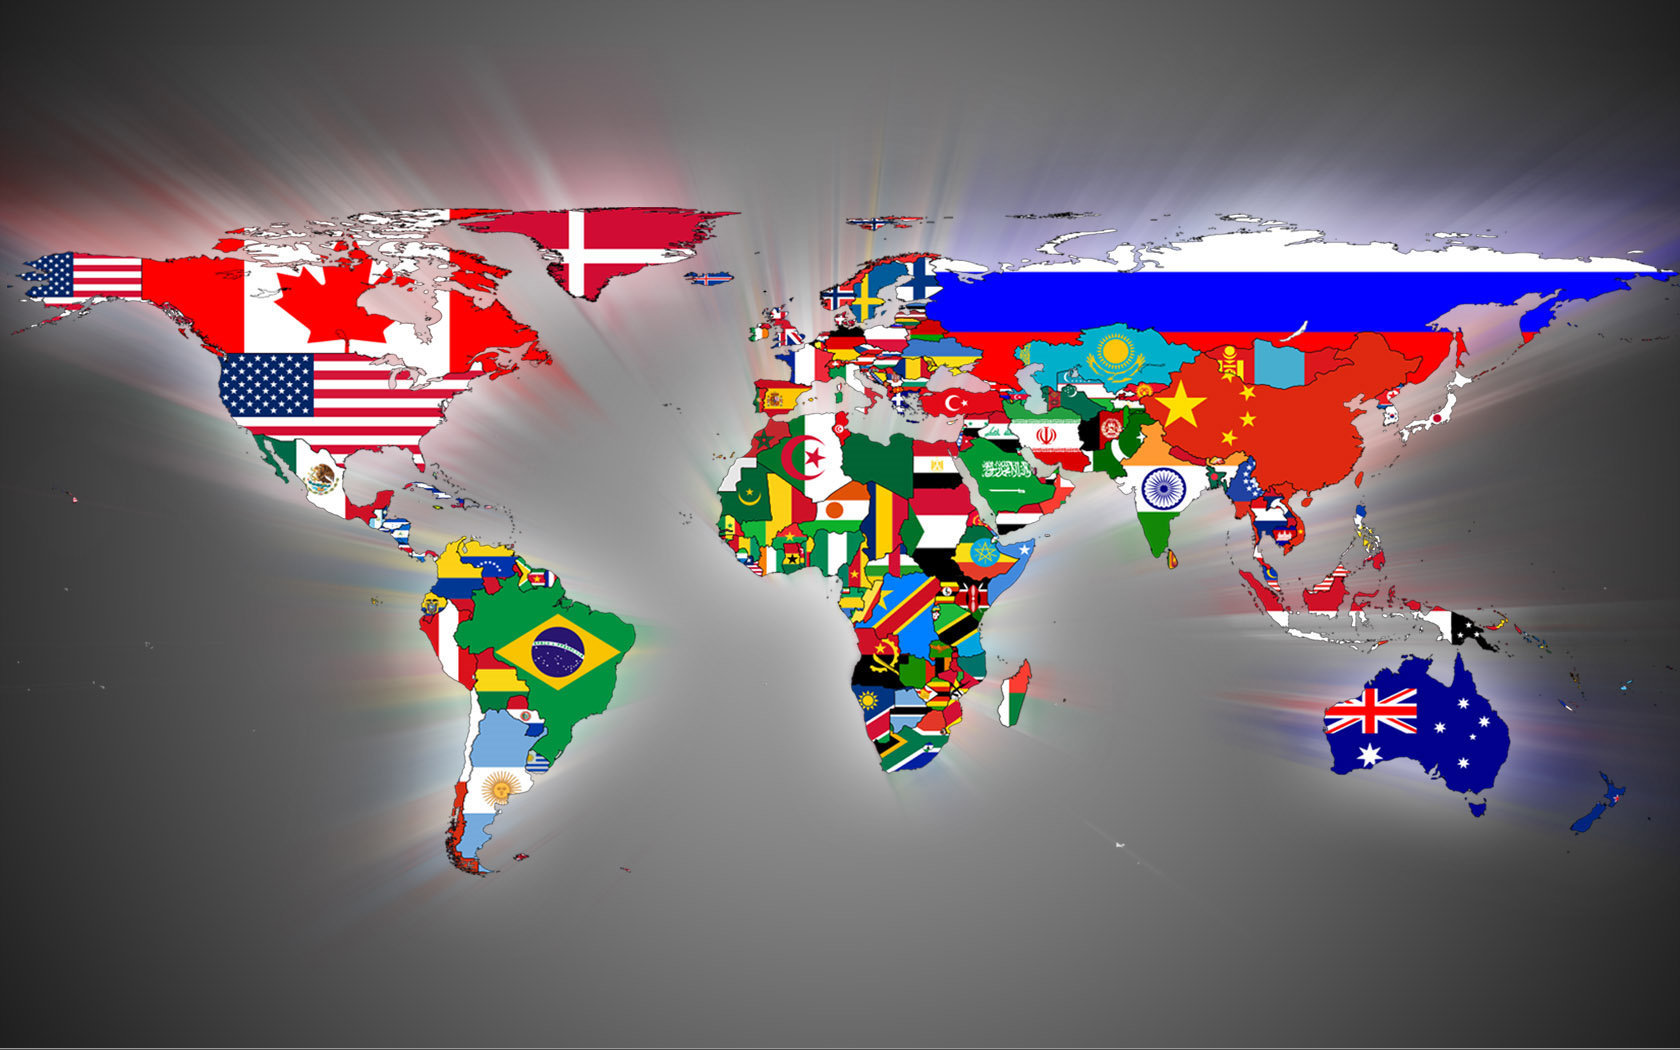 Free download world map background id486301 hd 1680x1050 for computer publicscrutiny Choice Image